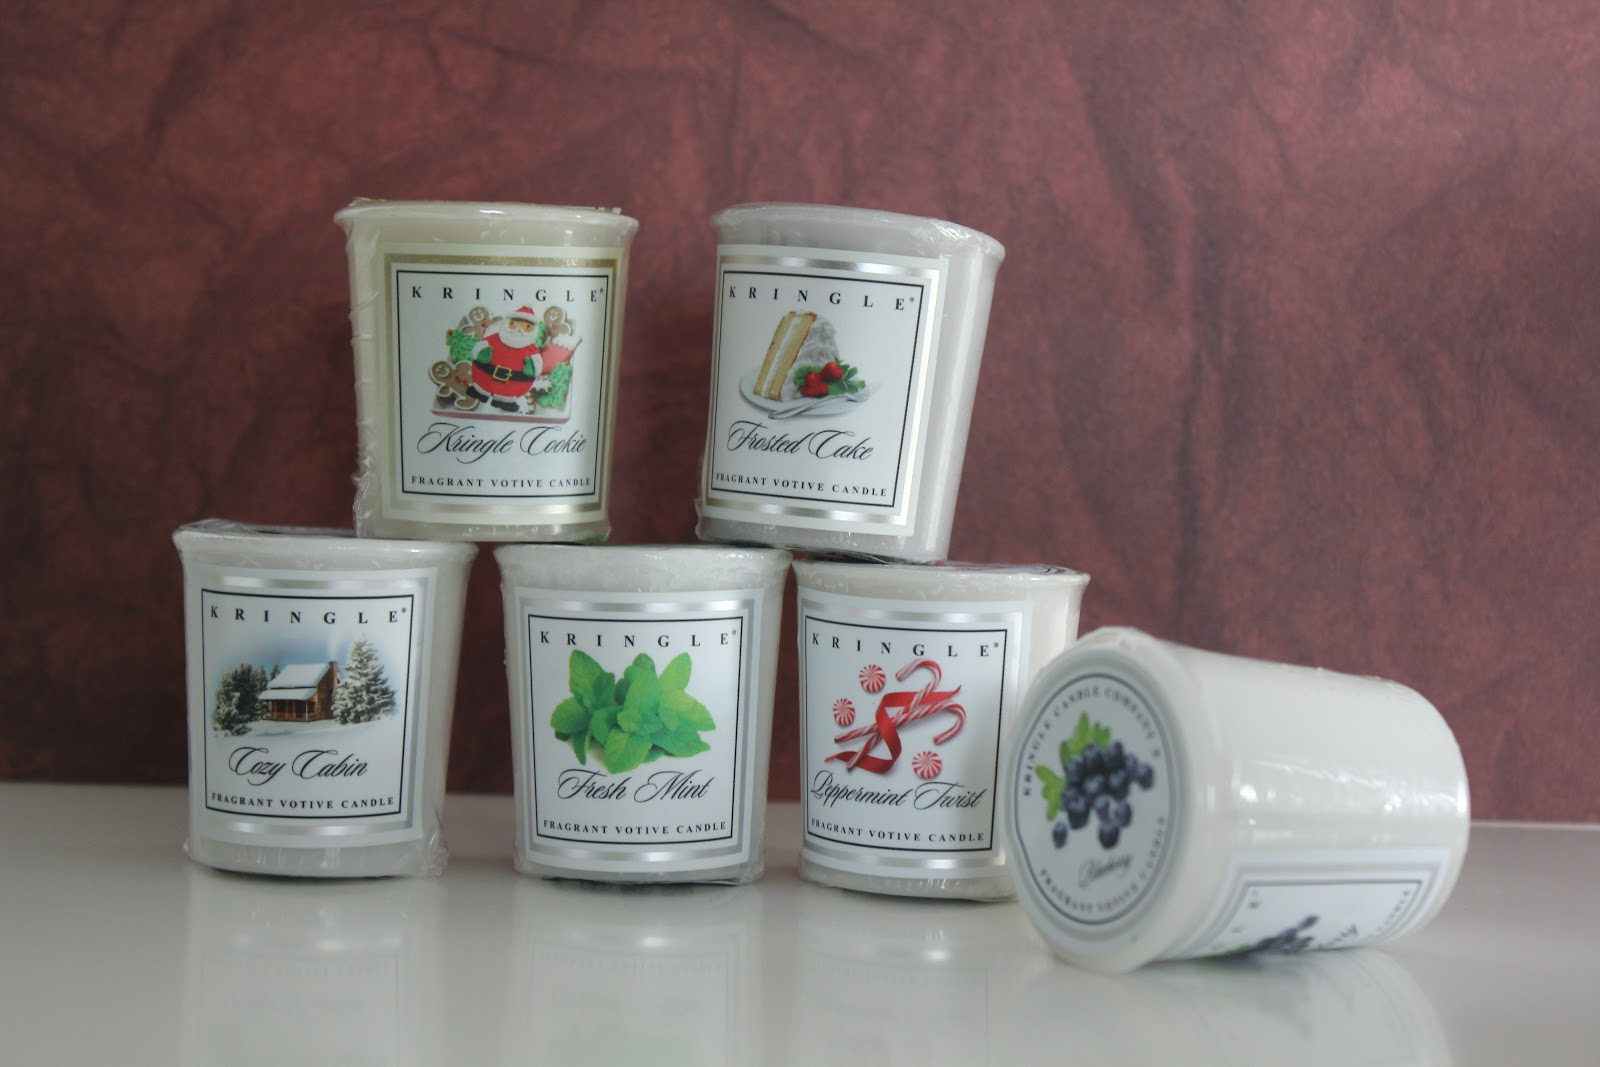 Premiere commande Kringle Candle